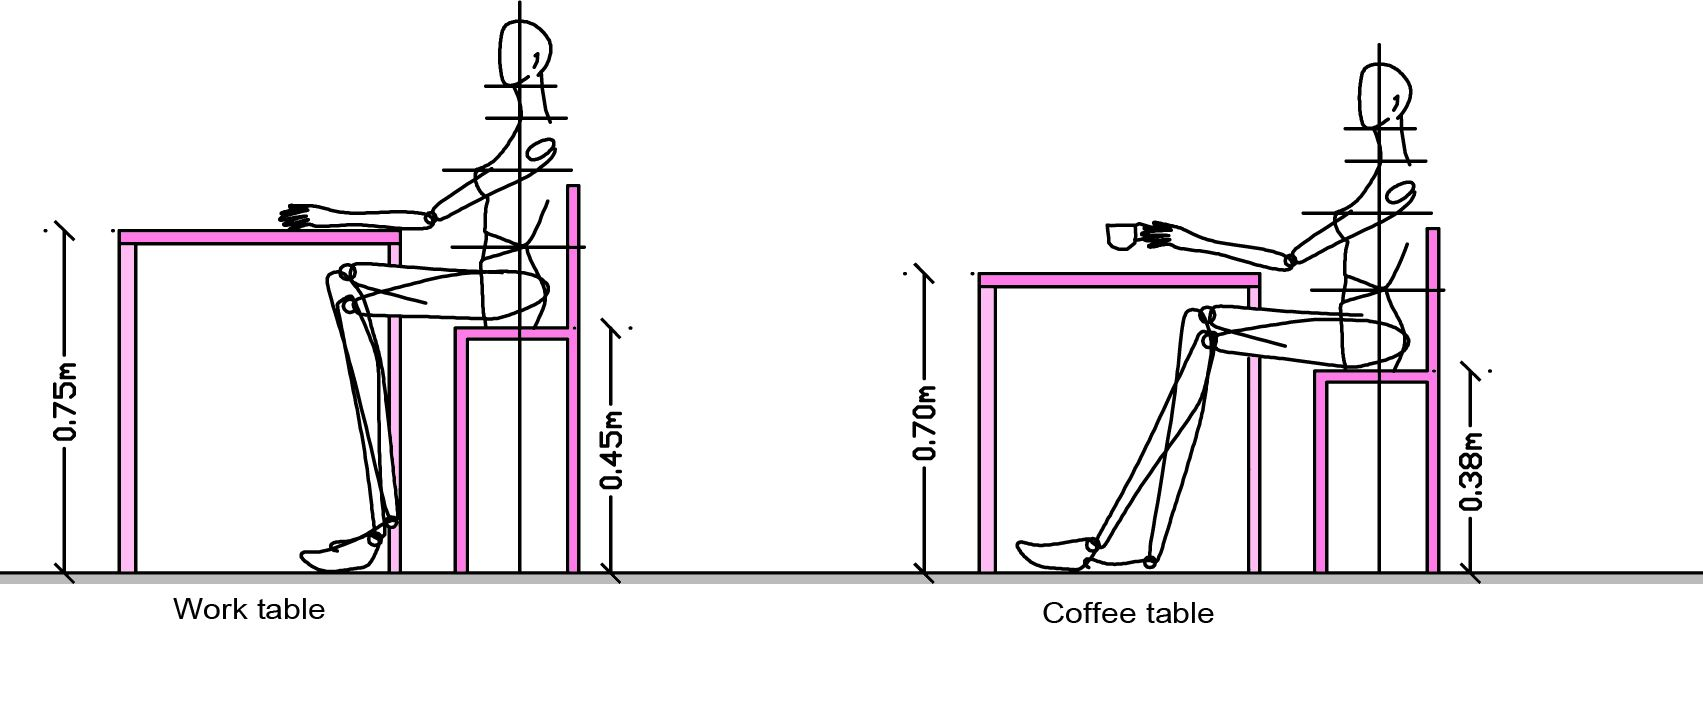 Body measurements ergonomics for table and chair dining  : c190bc80806885f6db2141bd87157039 from www.pinterest.com size 1703 x 709 jpeg 239kB